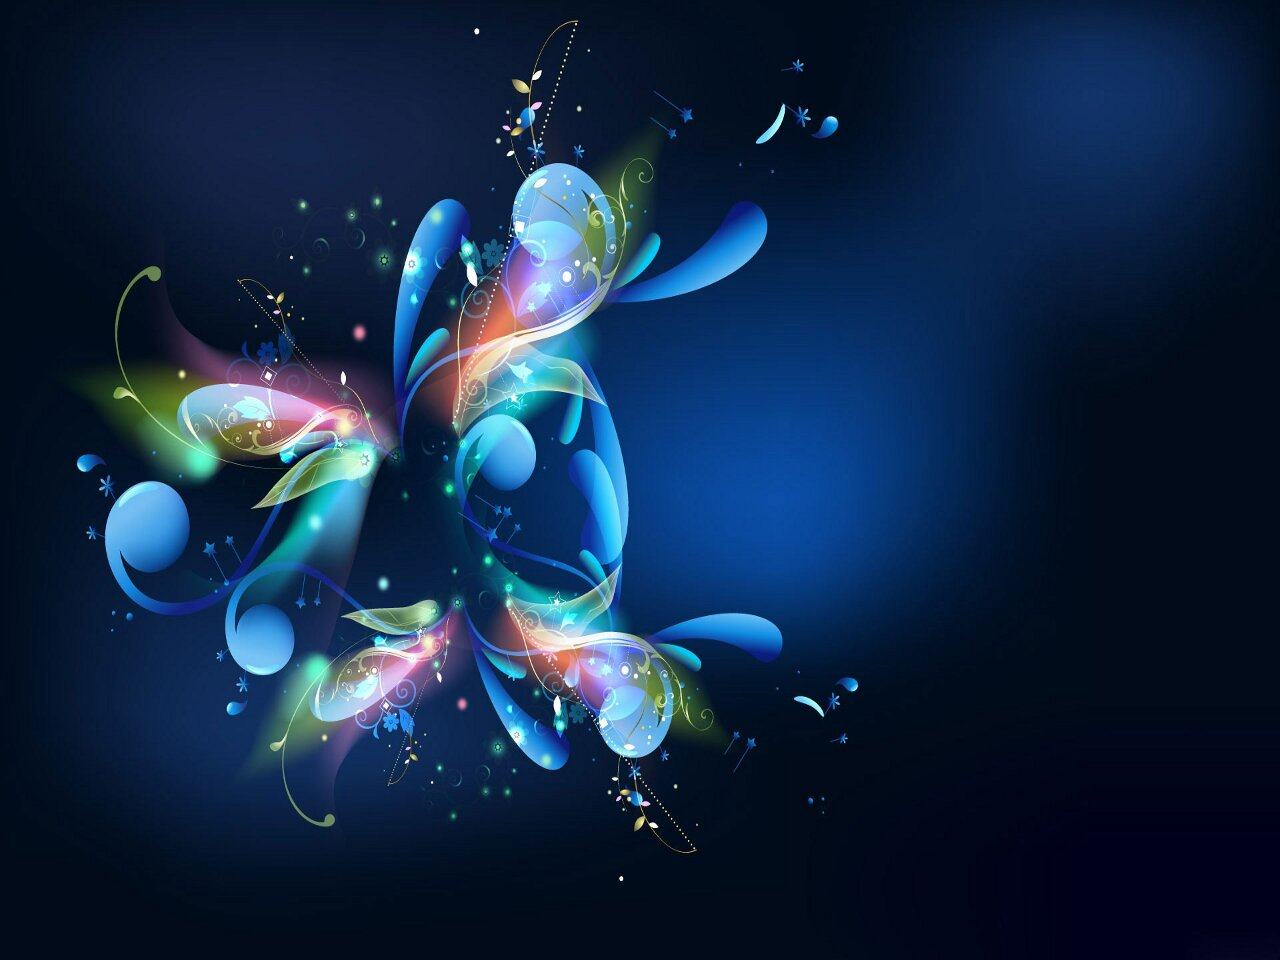 abstract-cute-girly-wallpapers